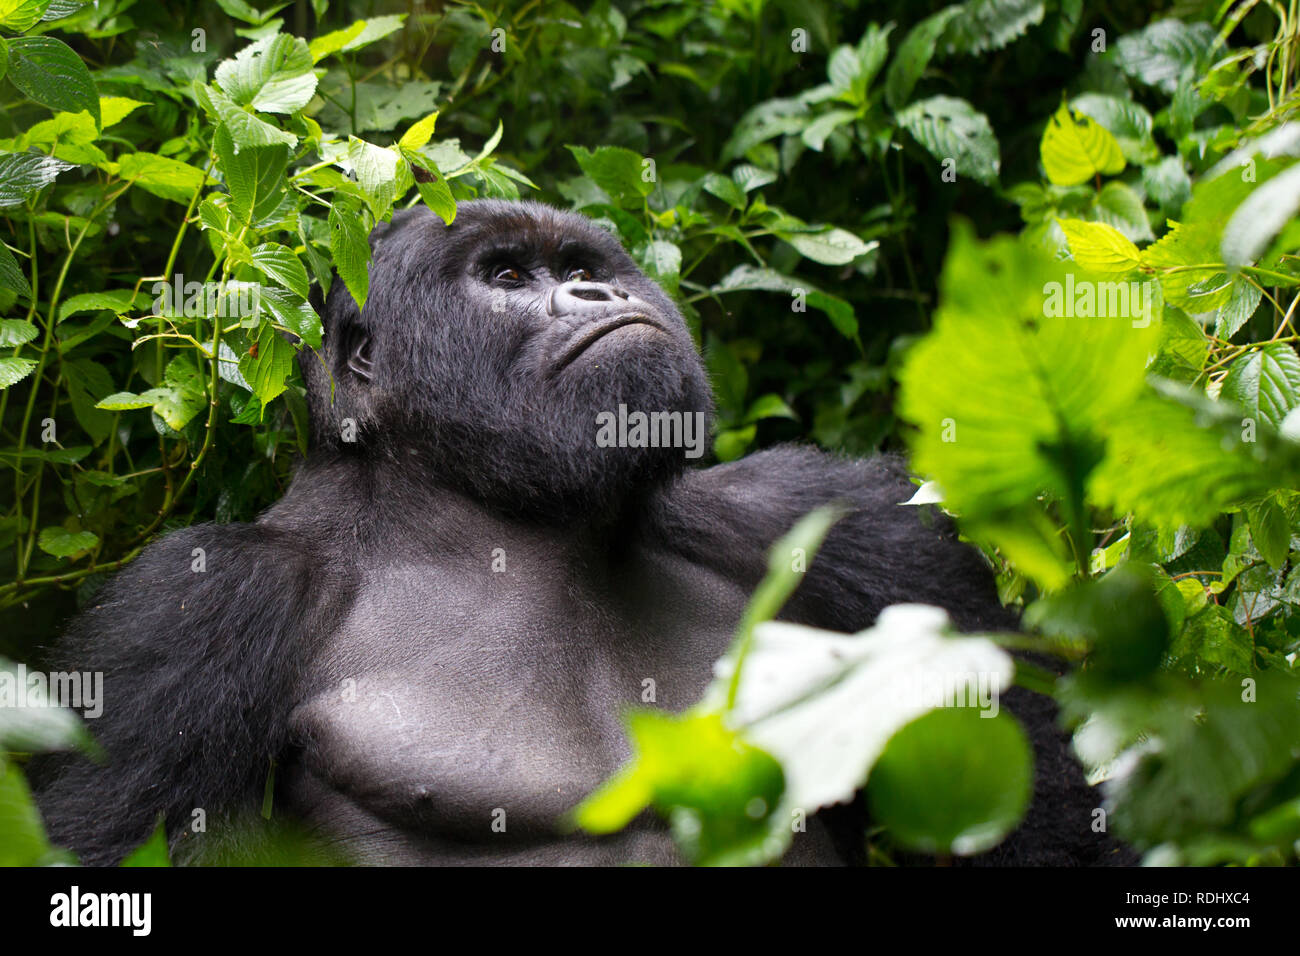 Virunga National Park, DRC, is one of the few places inhabited by the critically endangered mountain gorillas, Gorilla beringei beringei. - Stock Image